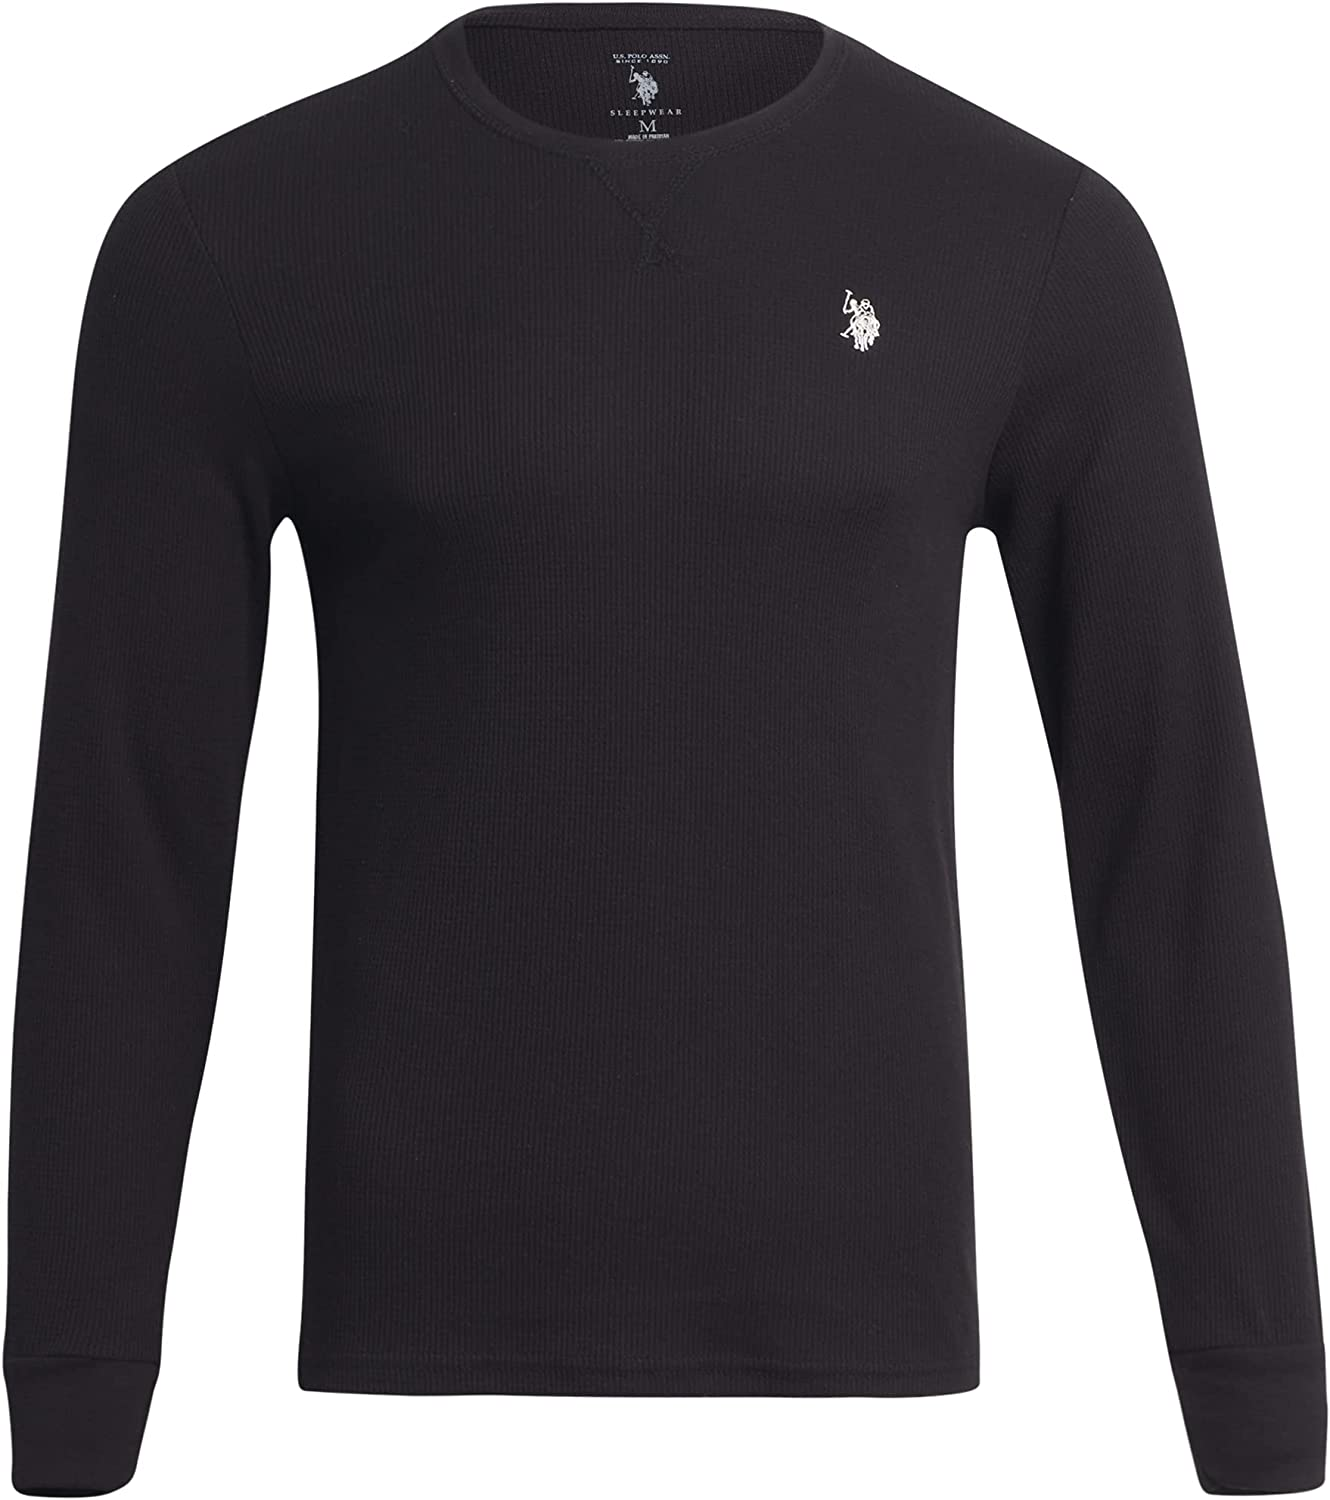 U.S. Polo Assn. Men?s Thermal Shirt ? Long Sleeve Waffle Knit Top, Size Large, Black